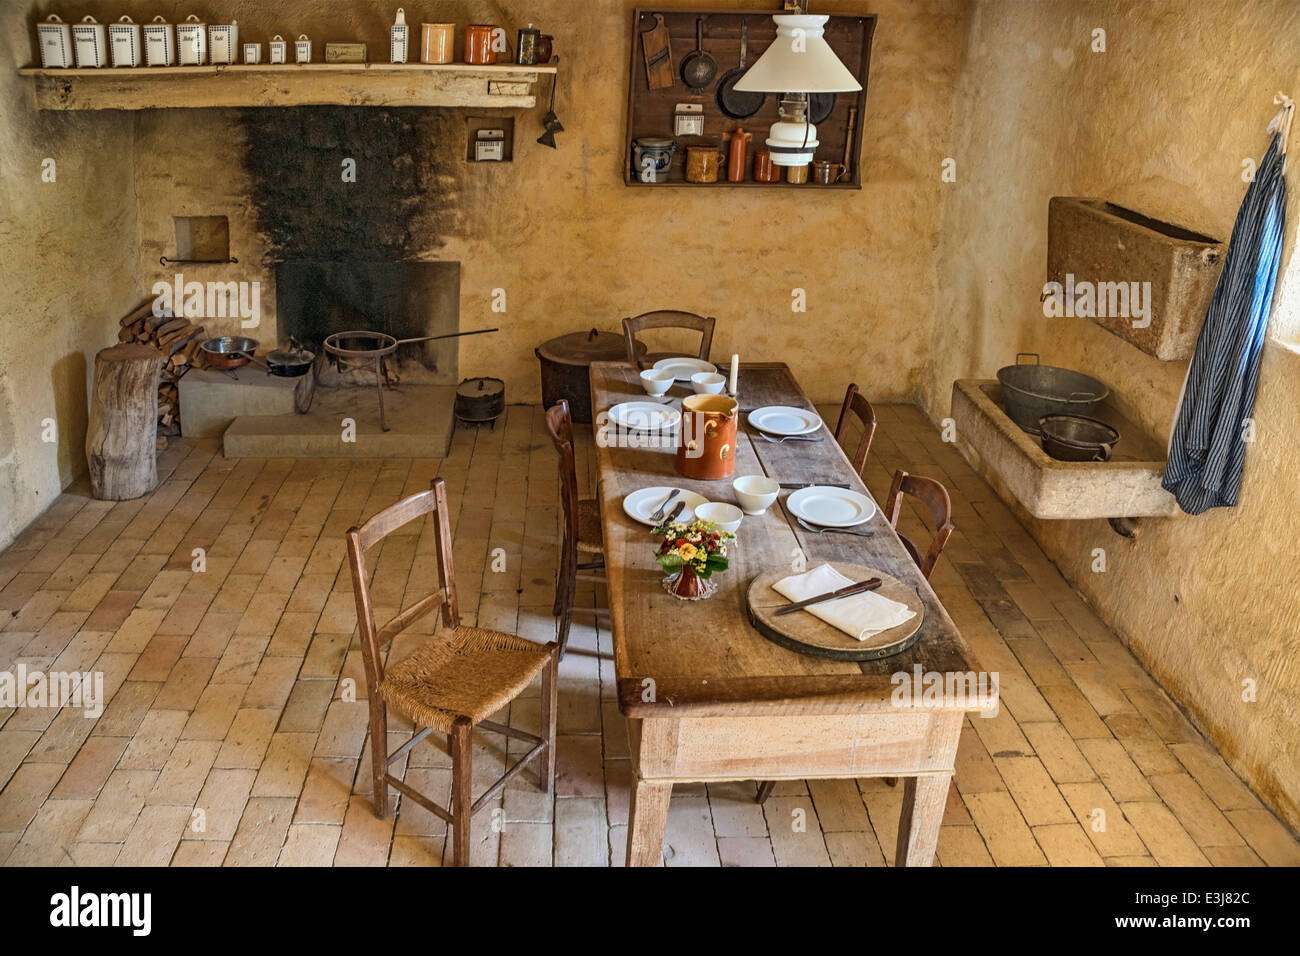 Interior of a Tessin Farmhouse at the Open Air Museum Ballenberg, Berner Oberland, Switzerland. - Stock Image